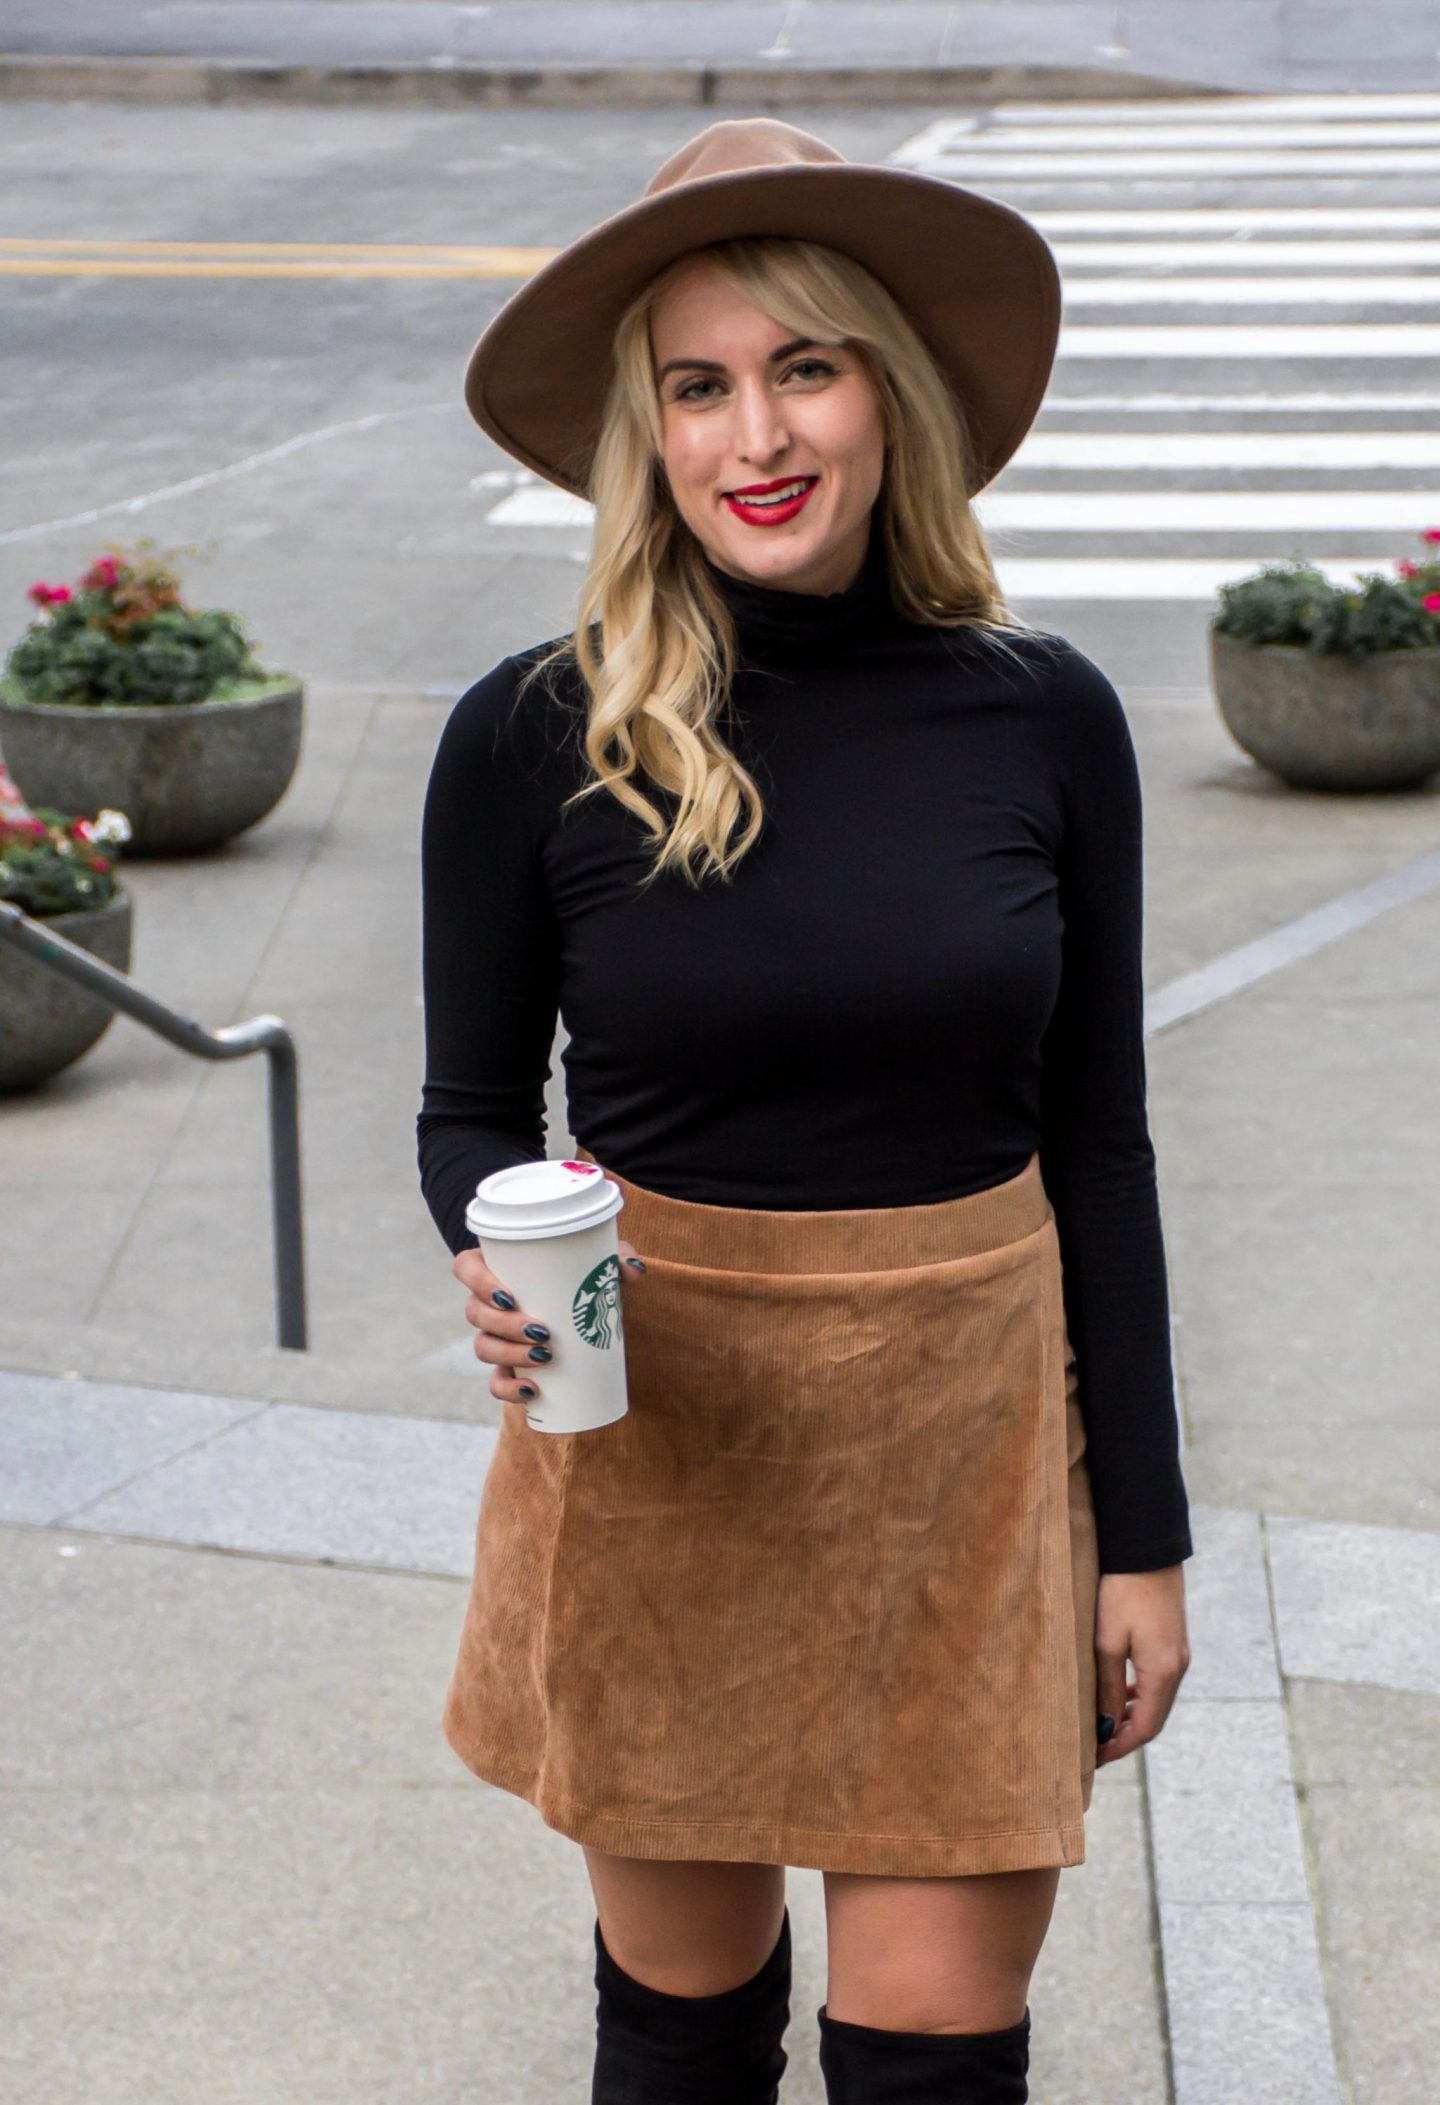 legalleeblonde wearing corduroy mini skirt black turtleneck and hat